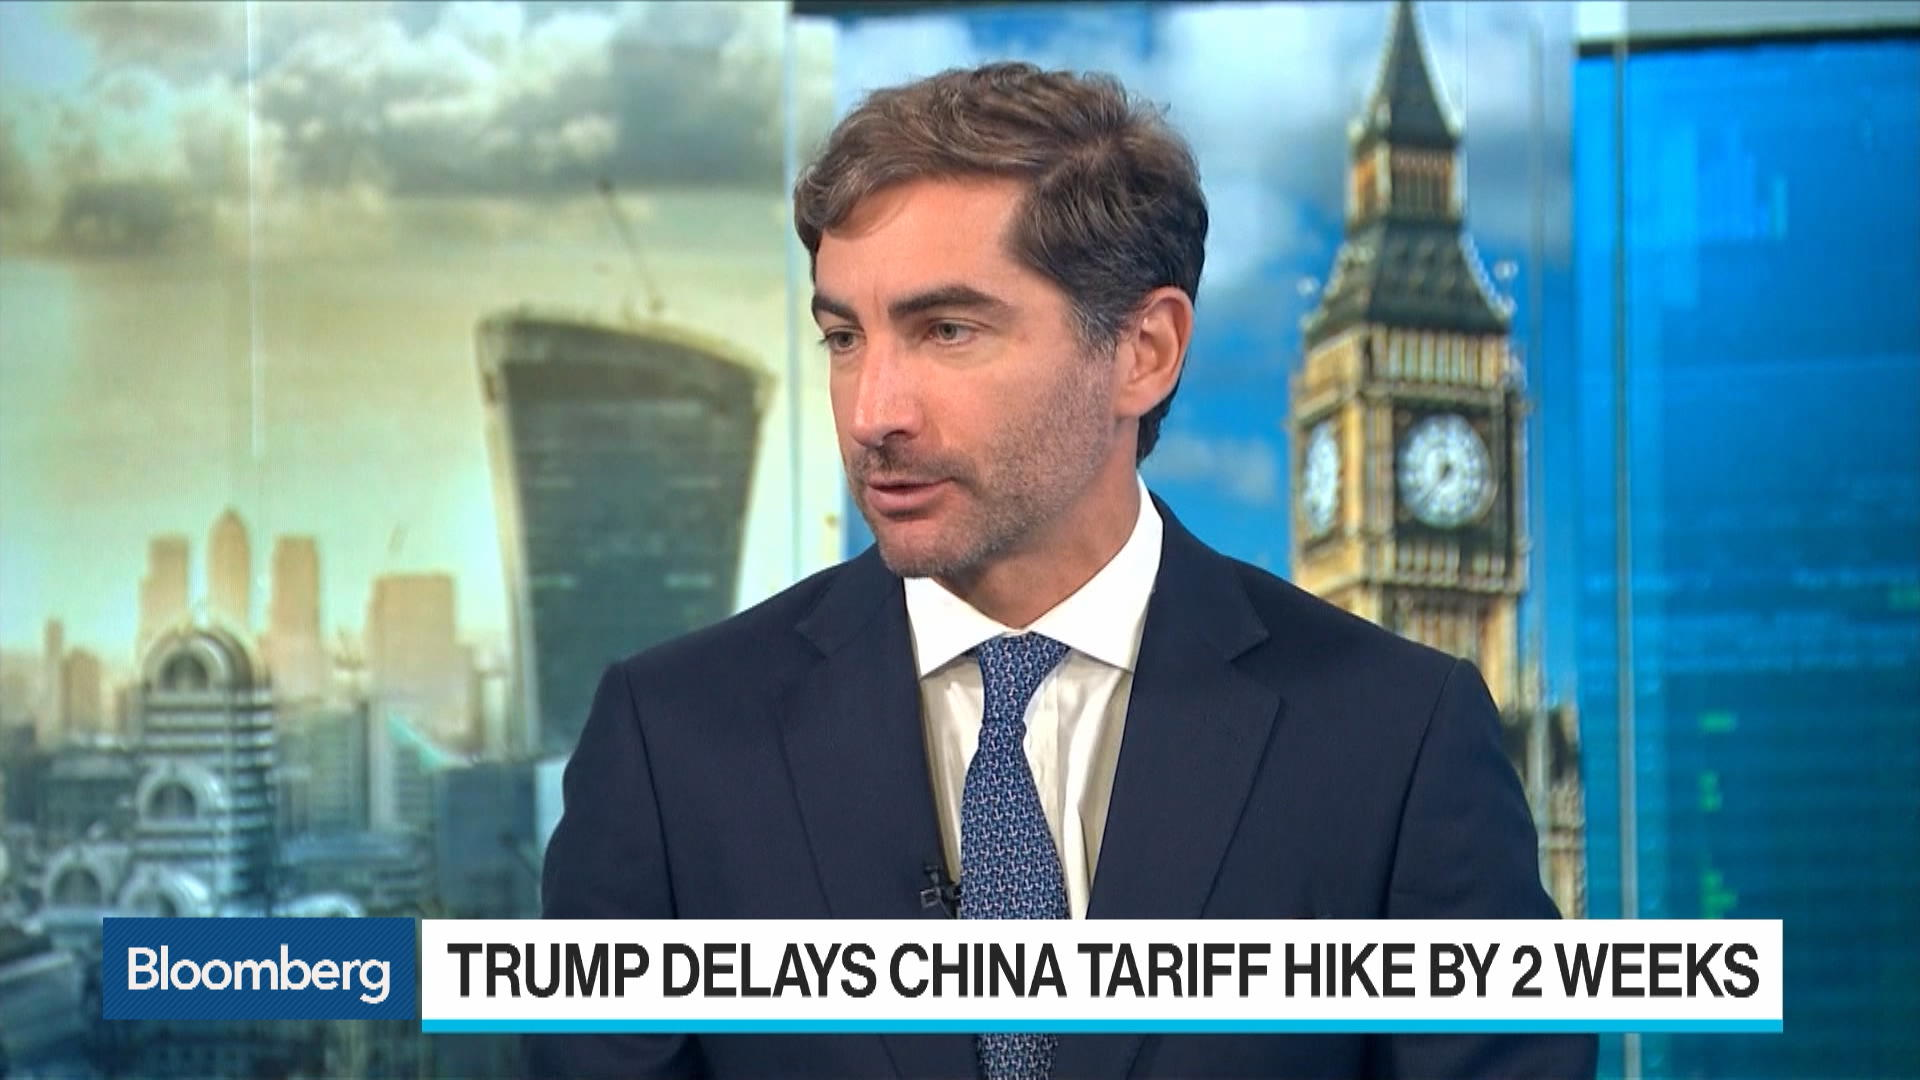 Global Economy Would See No Major Pickup, Even With Trade Deal: Alberto Gallo, Algebris Investments